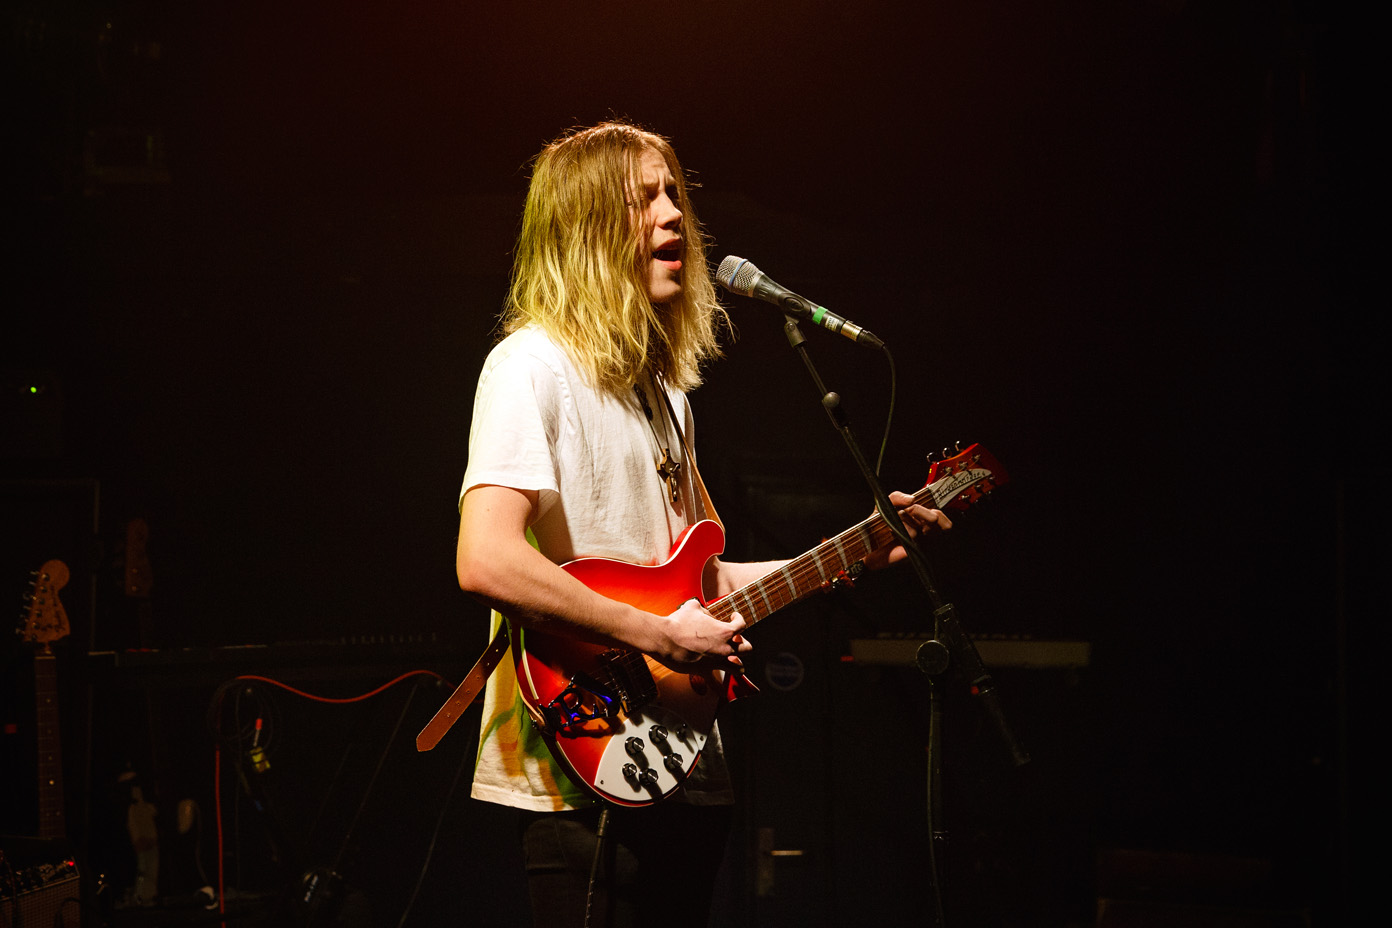 Isaac Gracie at the O2 Academy Newcastle on 20 February 2016